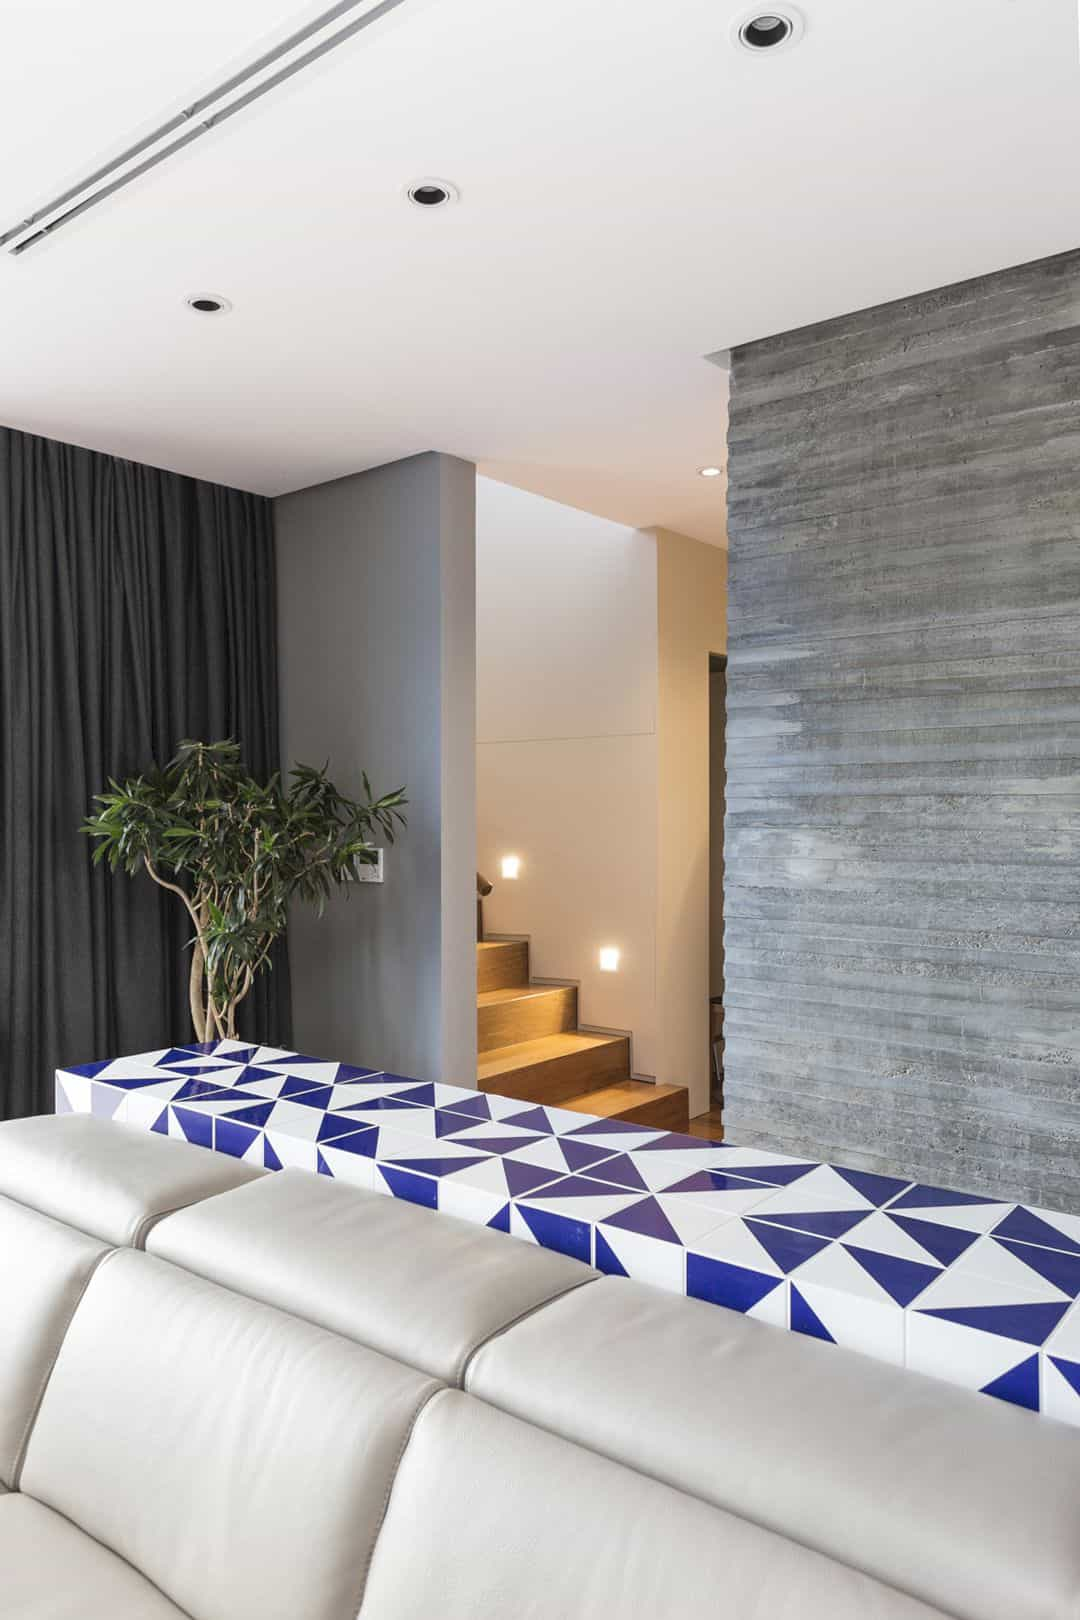 Casa R & L An Interior That Reflects Welcoming Personalities And Minimalist Aesthetics 9